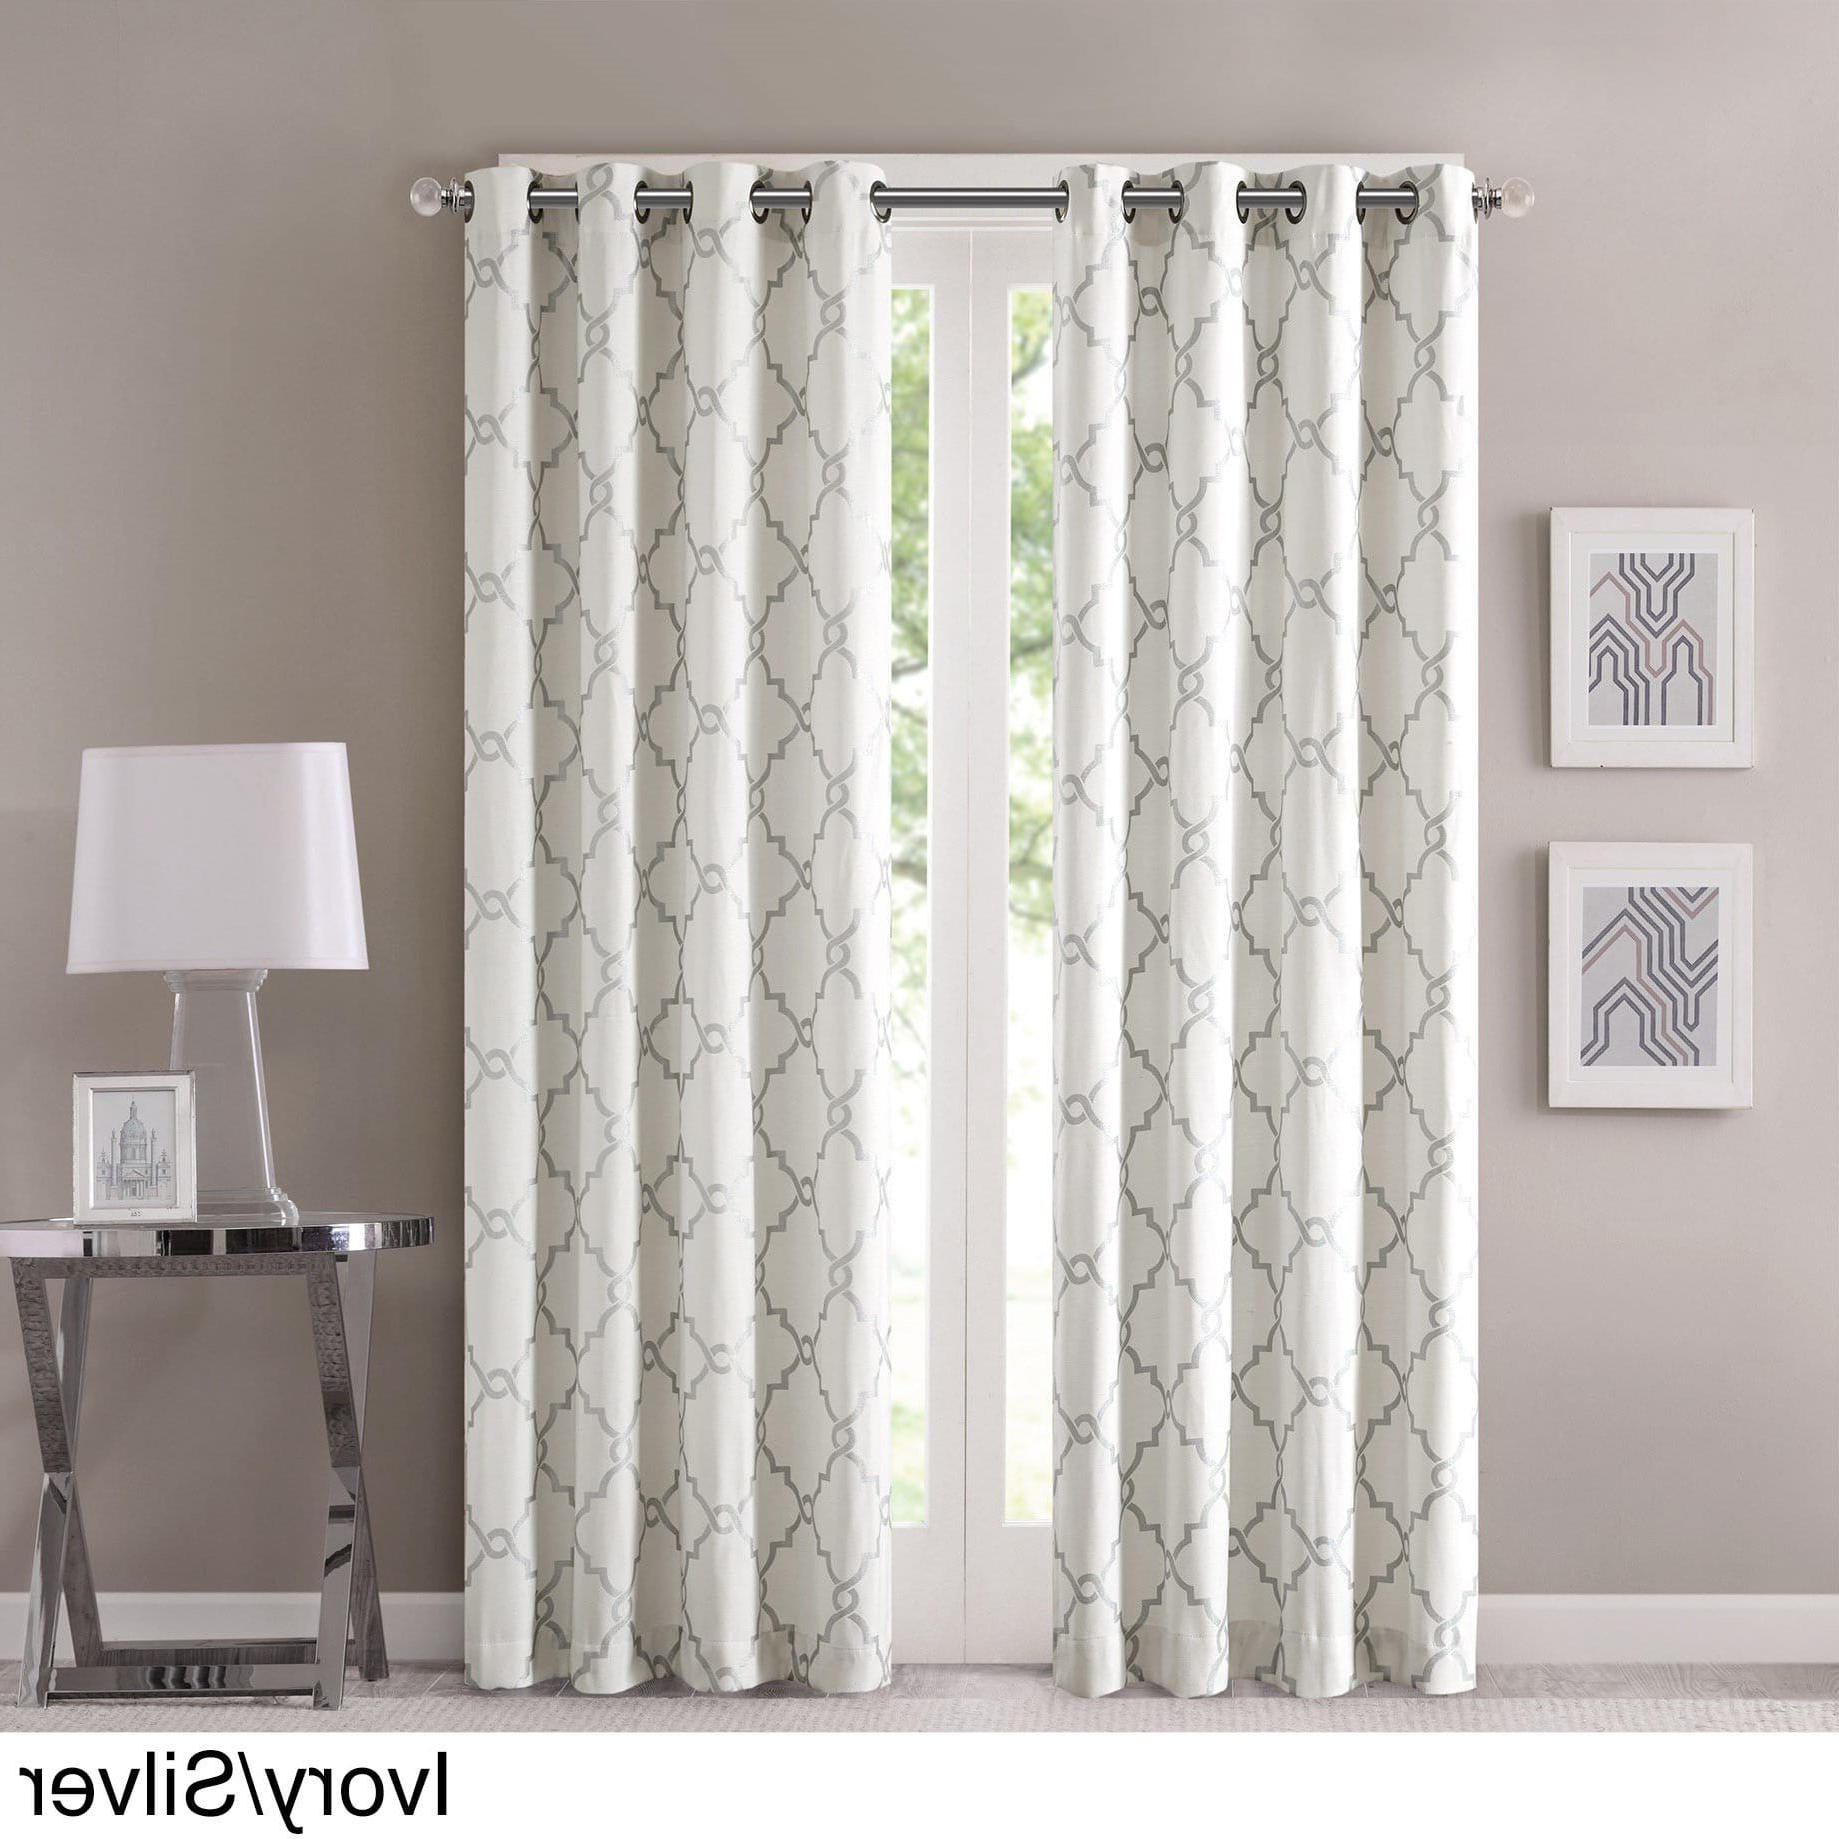 Madison Park Westmont Geometric Pattern Single Curtain Panel Within Most Recently Released Fretwork Print Pattern Single Curtain Panels (Gallery 4 of 20)